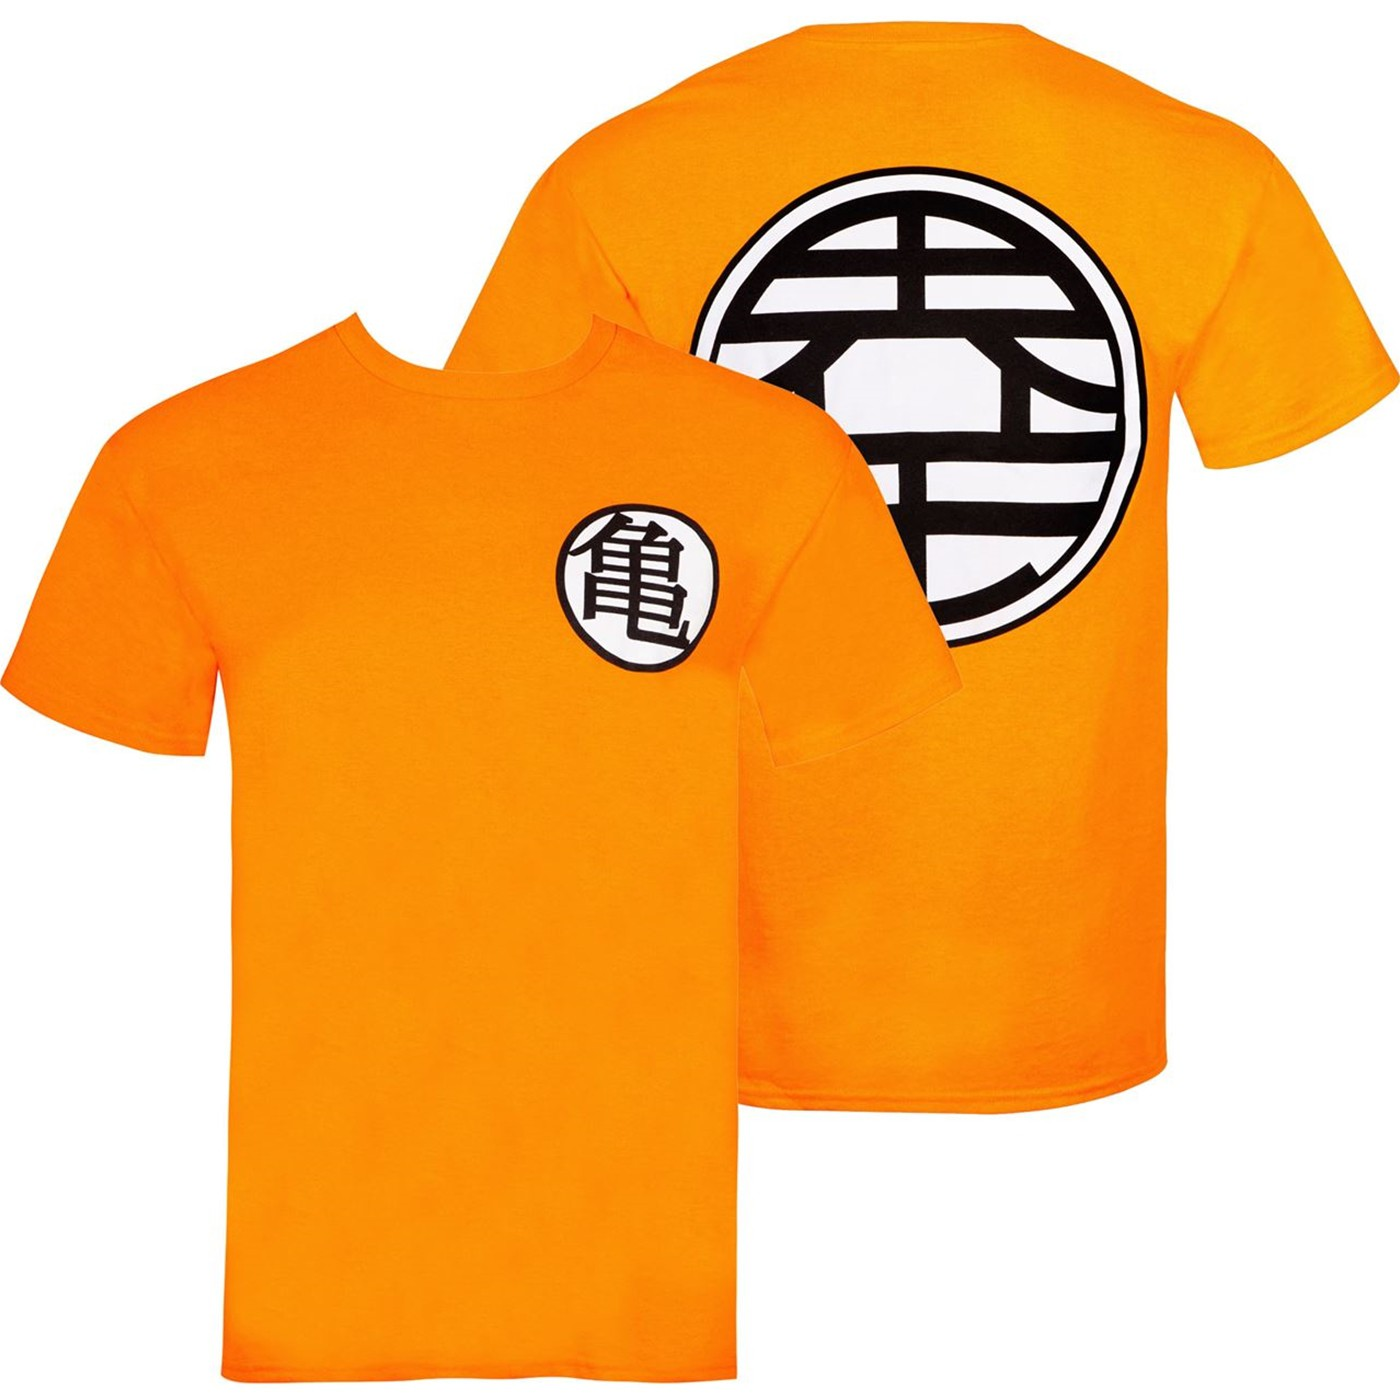 Dragon Ball Z Kame Symbol Men's T-Shirt